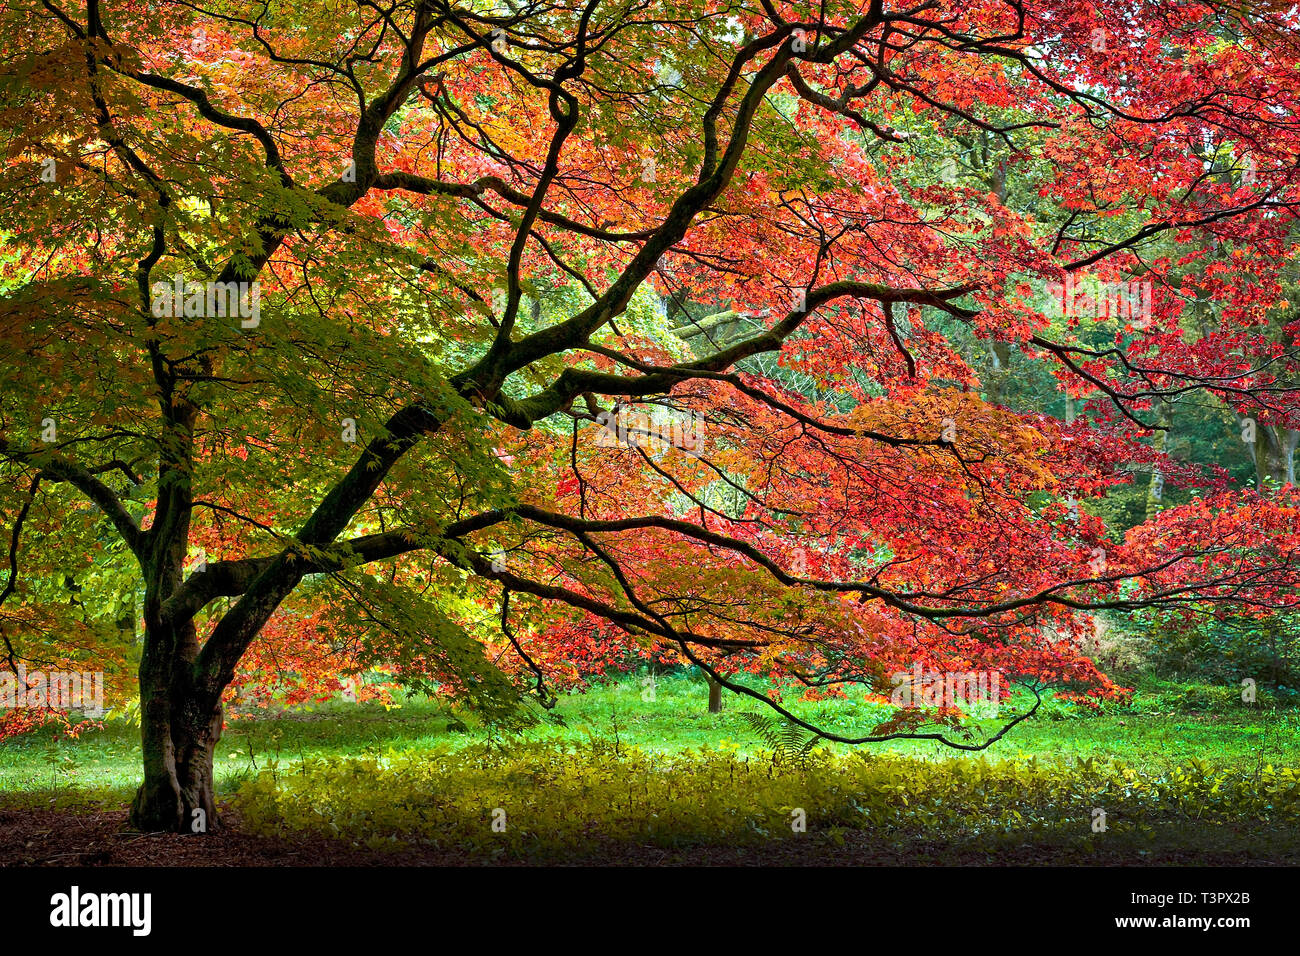 A Japanese Maple in Autumn at the Westonbirt Arboretum UK. Stock Photo